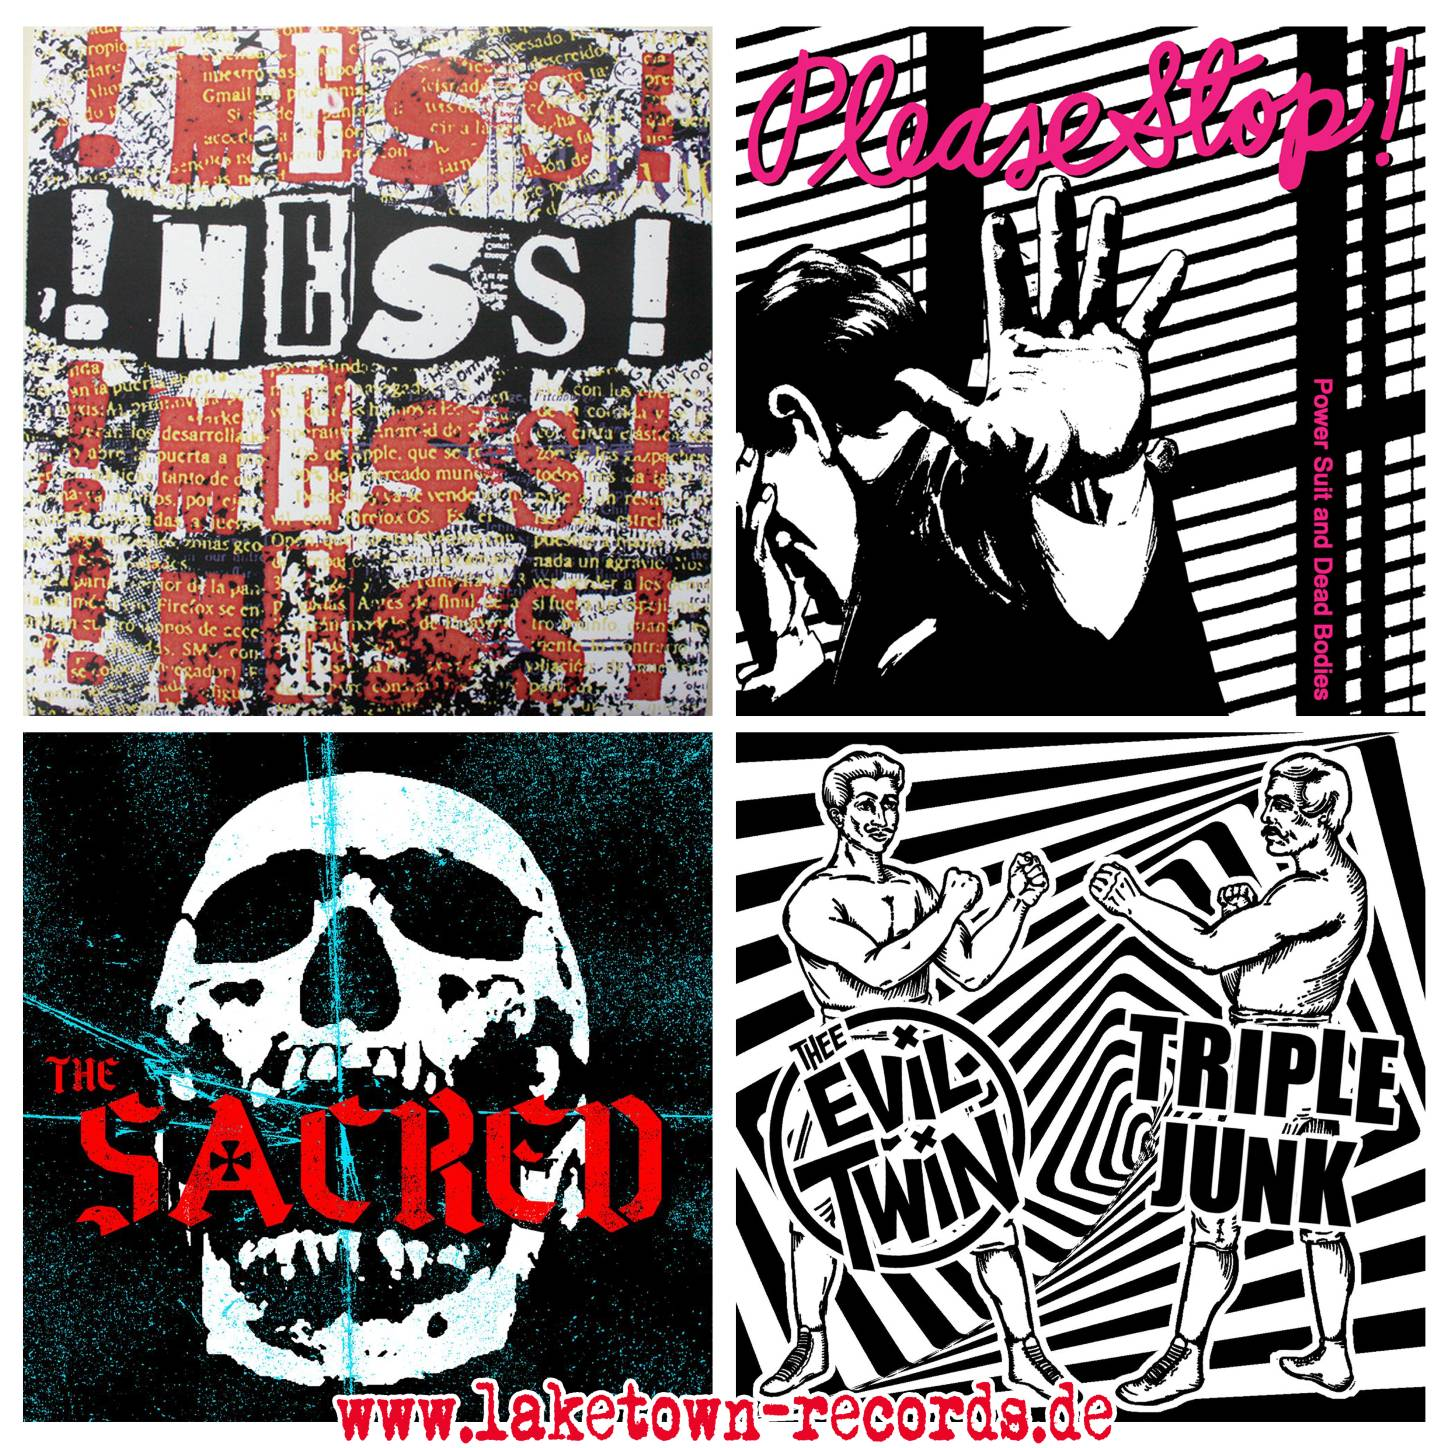 "!MESS!  (7"") - PLEASE STOP! (7"") - THE SACRED (7"") - THE EVIL TWINS / TRIPLE JUNK (SPLIT 7"")"